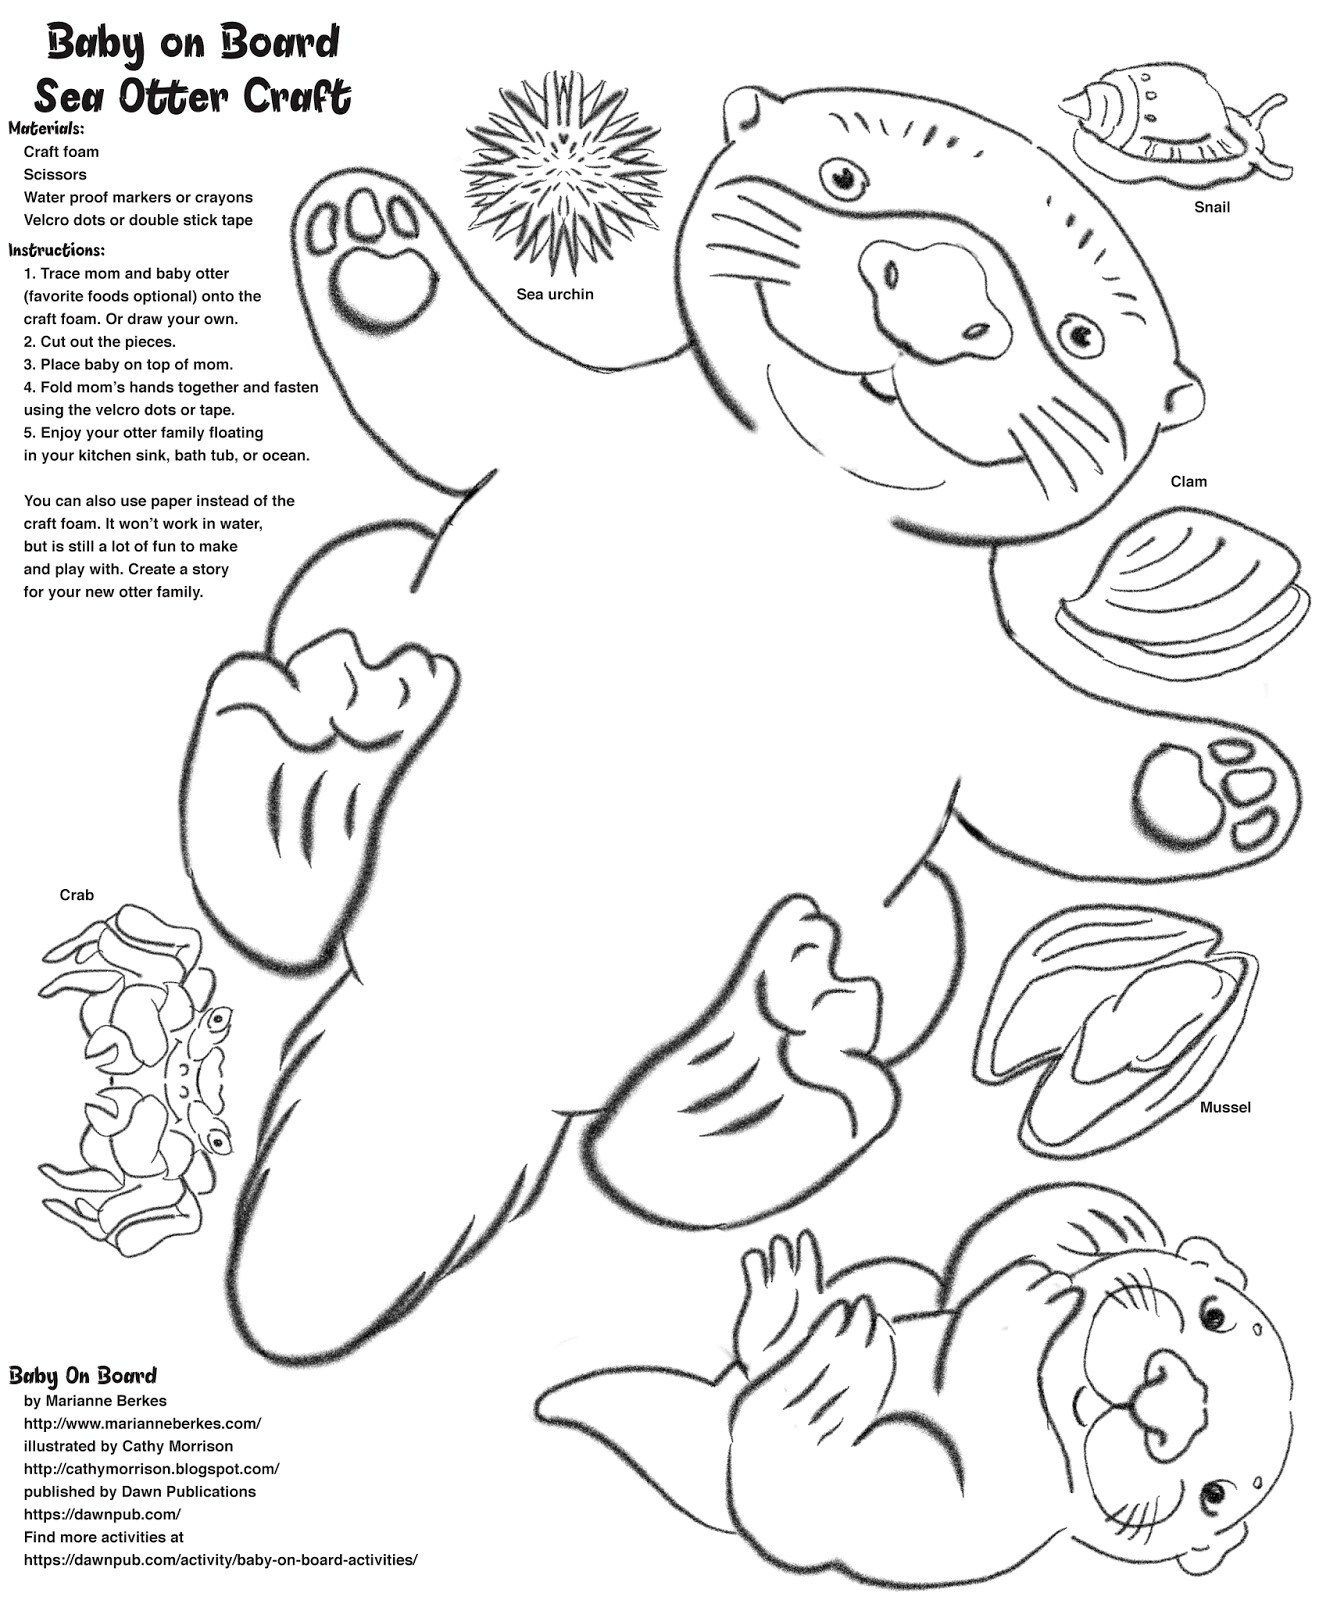 o is for otter coloring page 25 great image of otter coloring pages harry potter o otter for coloring page is